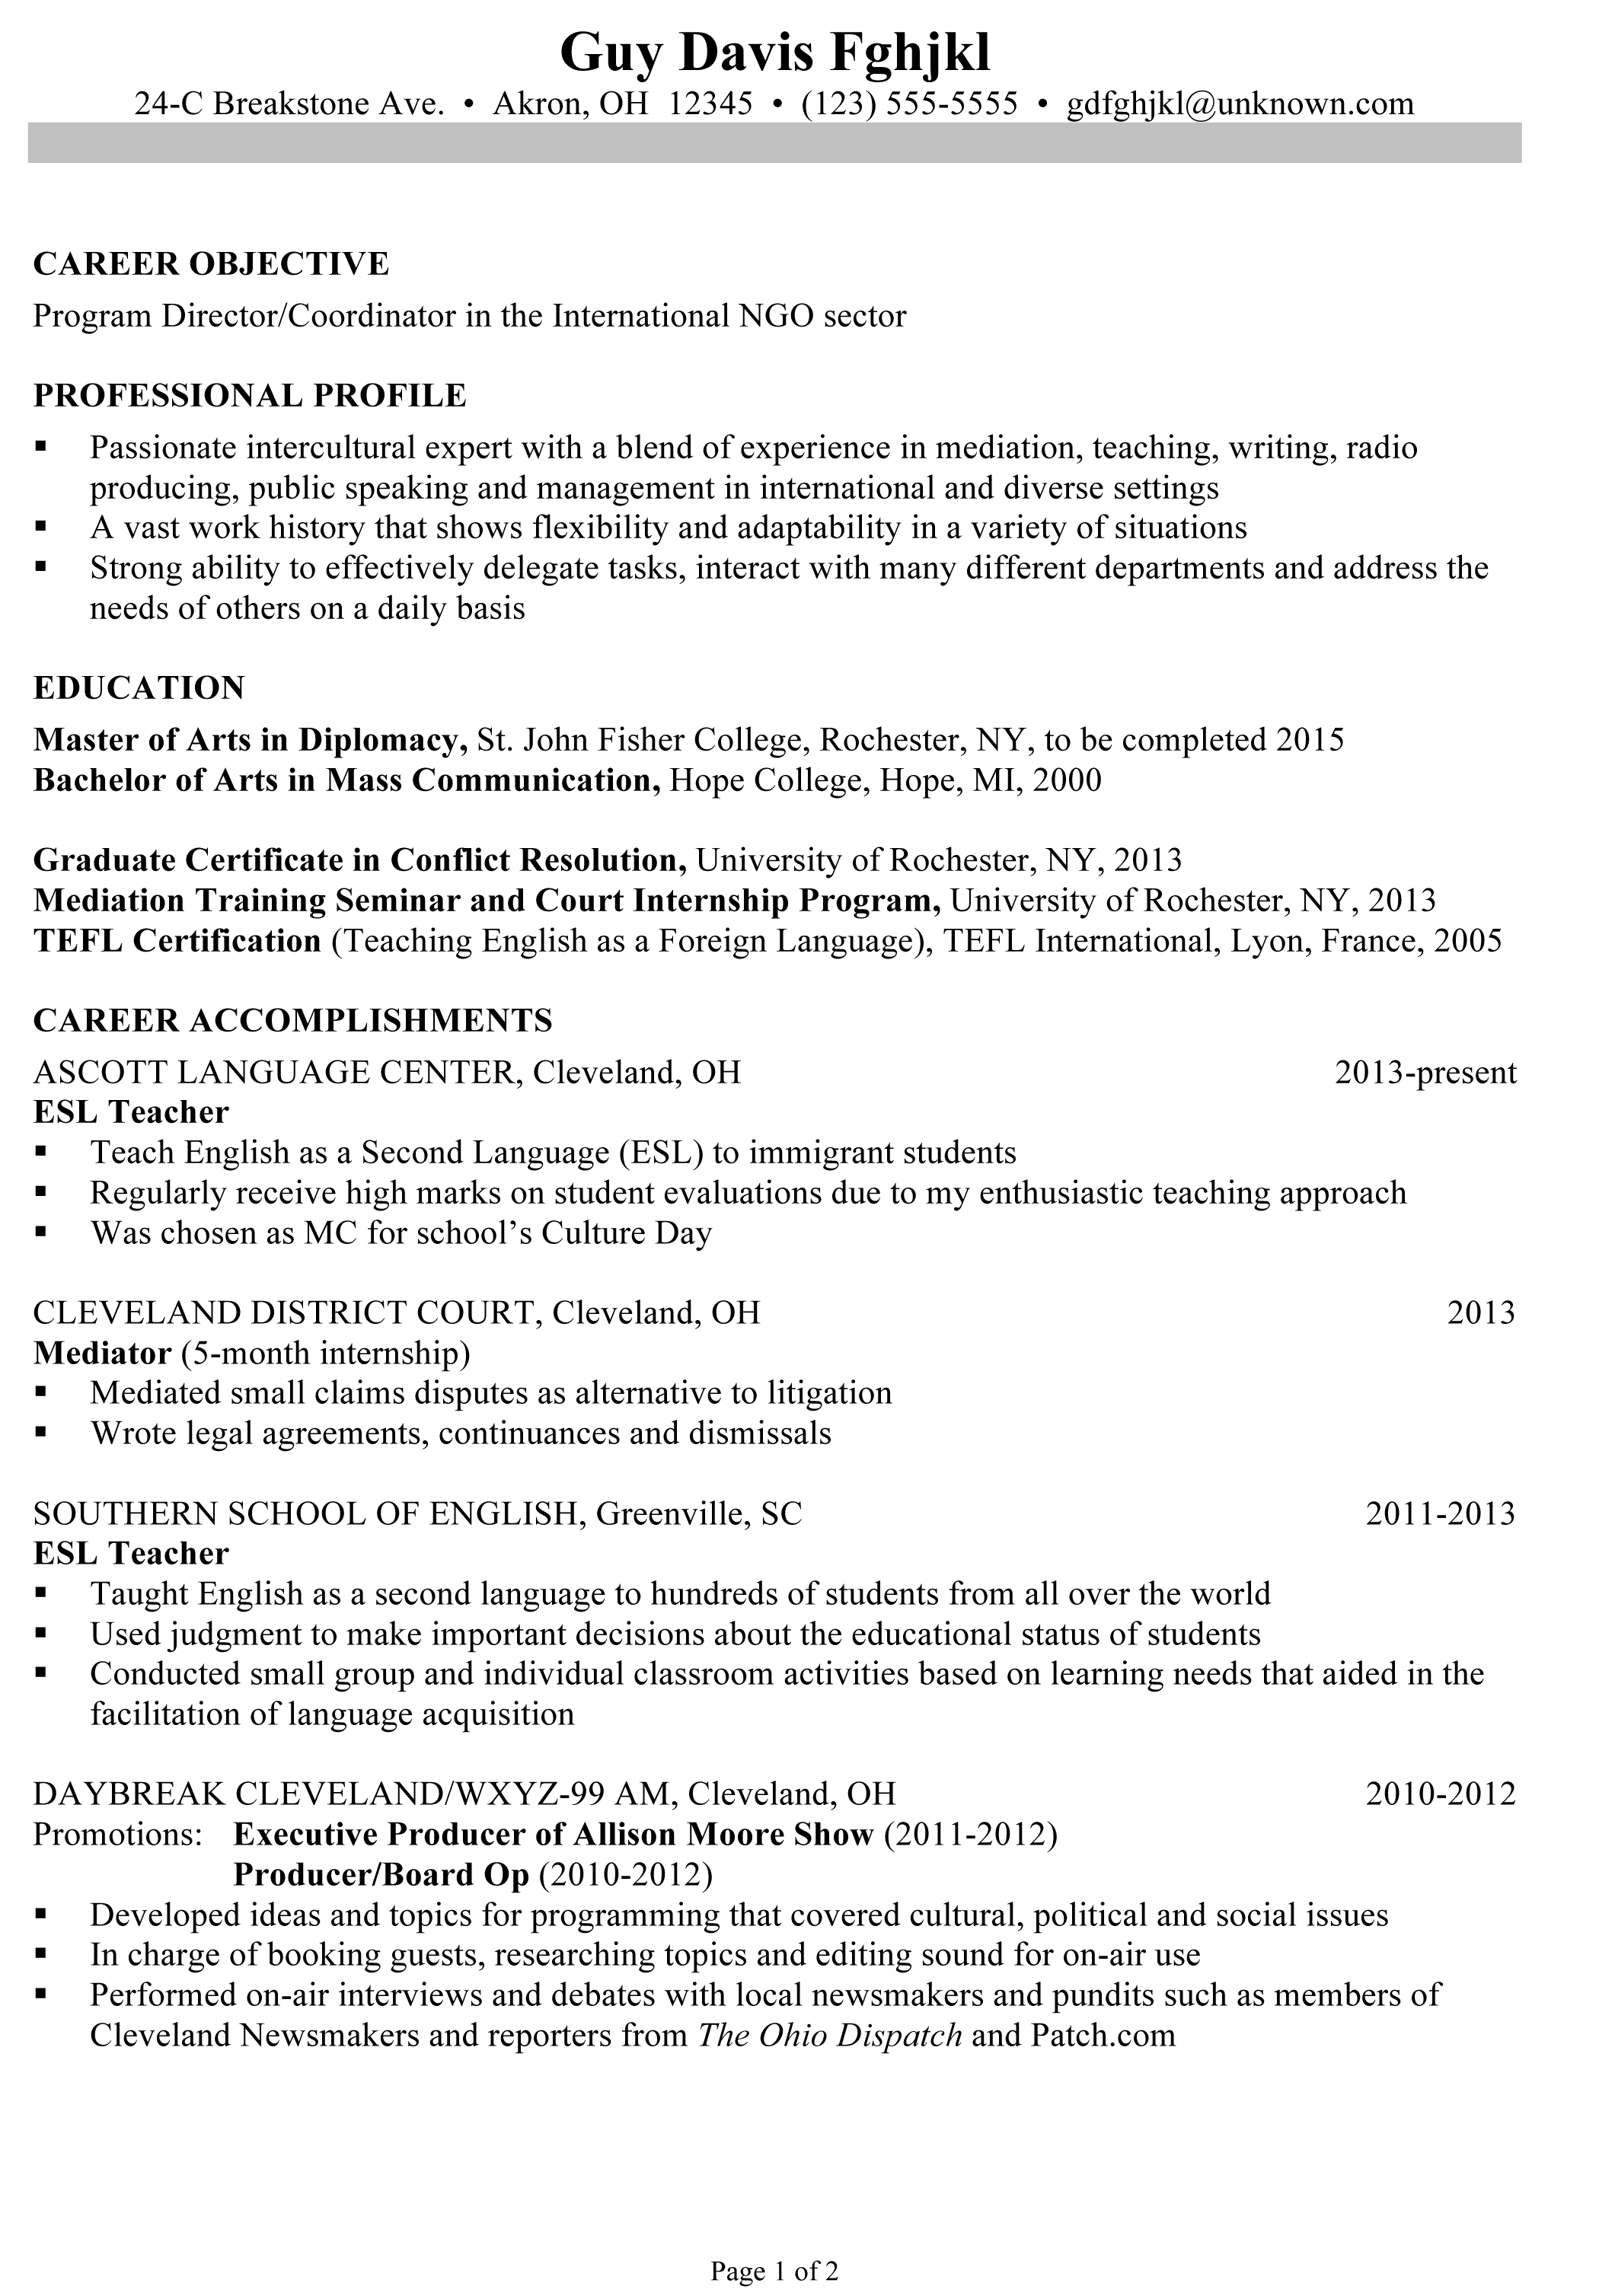 Chronological Resume Sample Program Director Coordinator  My